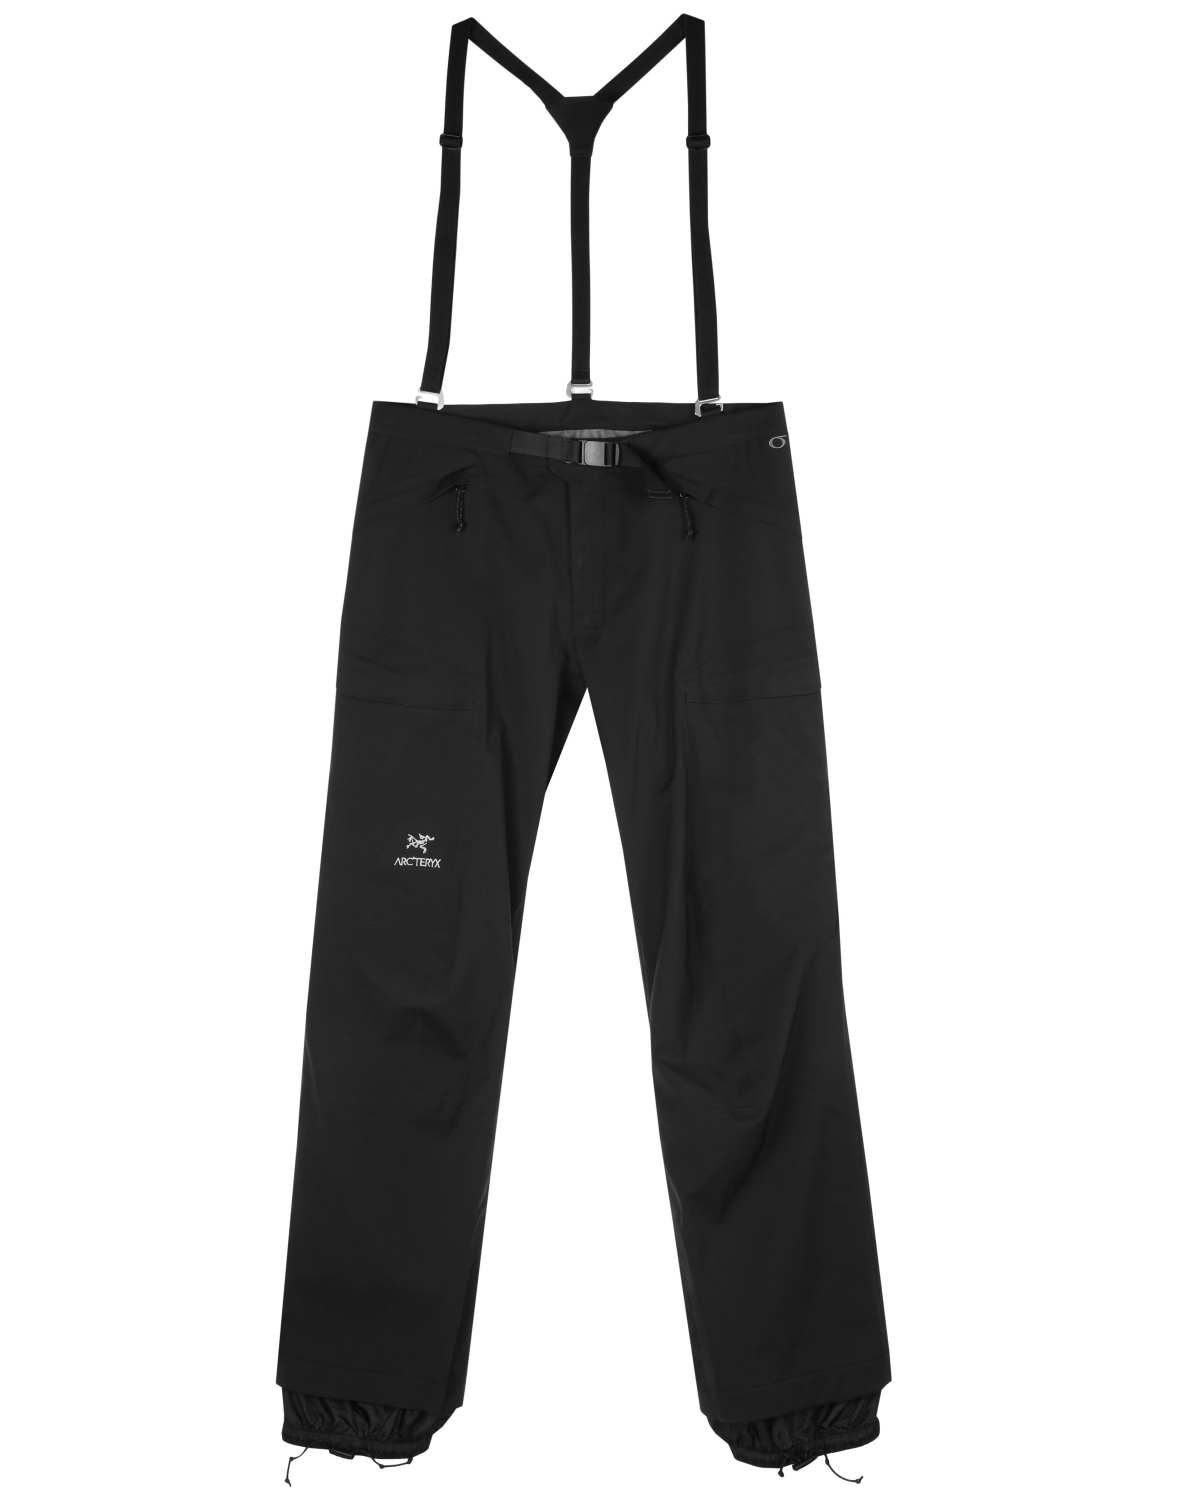 Fury AR Pant Men's Sales Samples